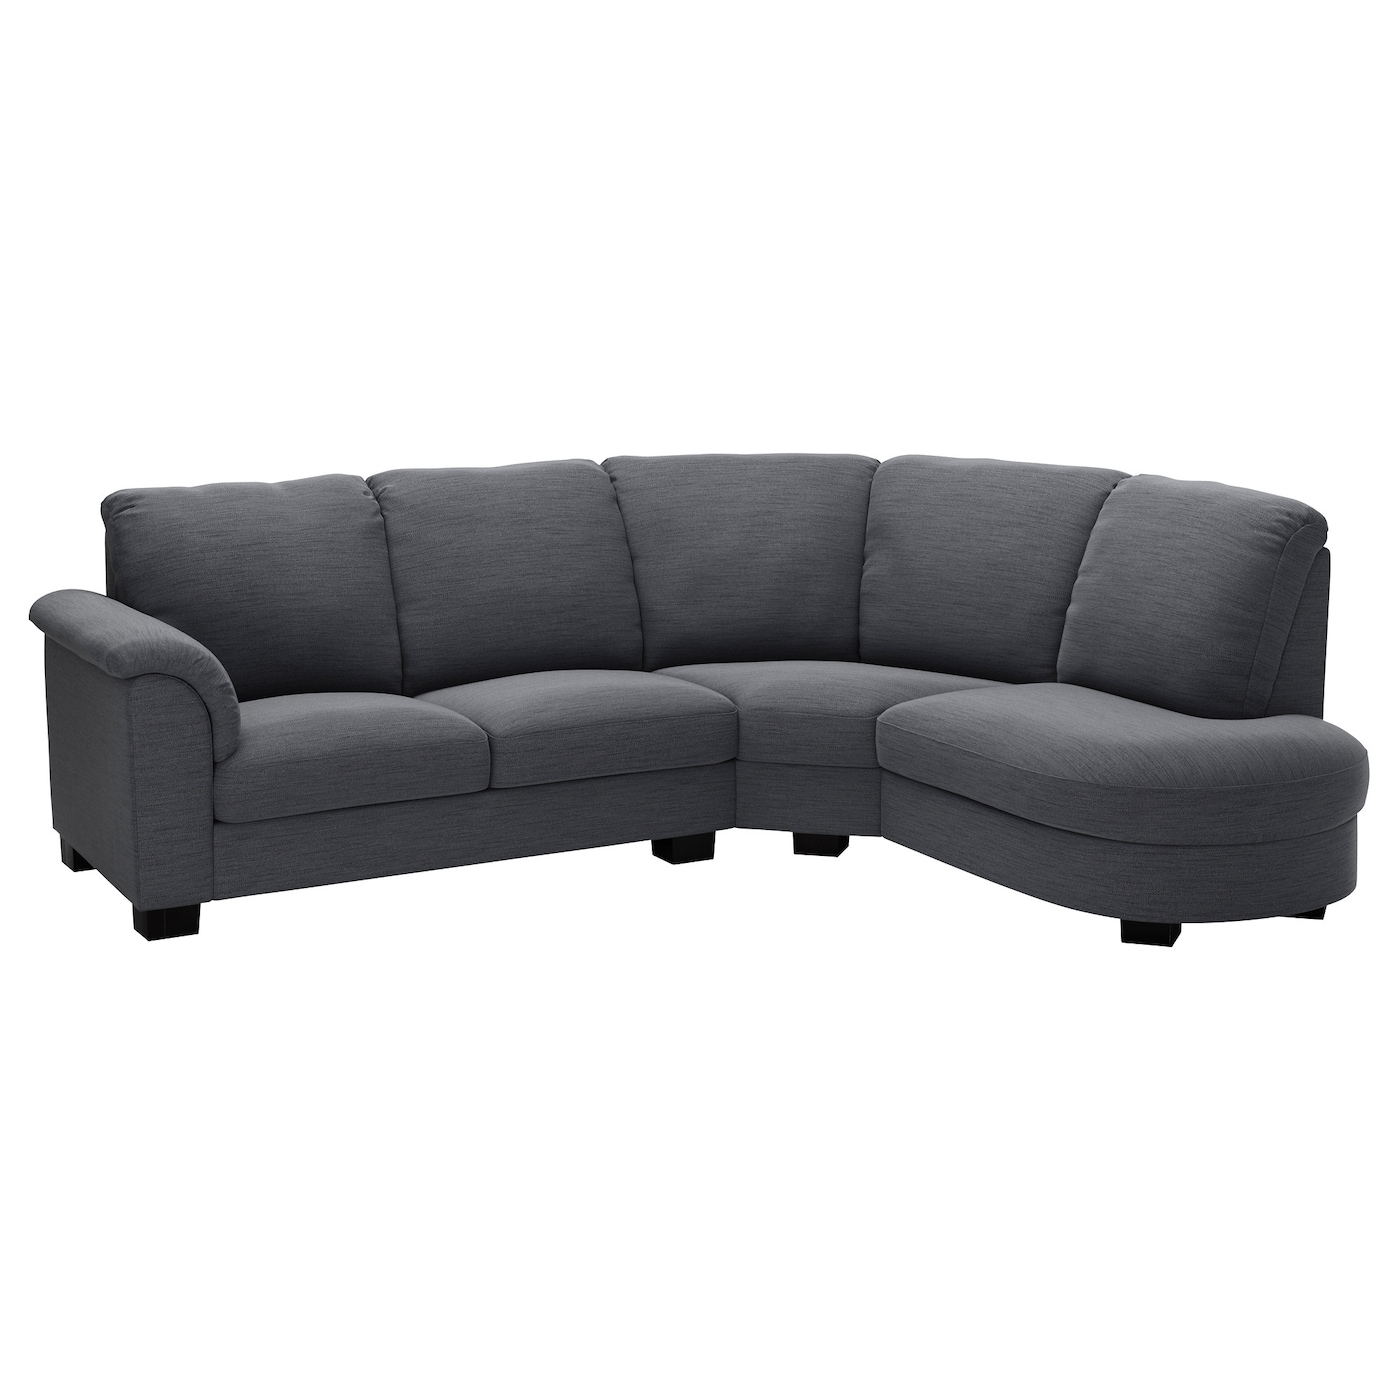 Ikea Tidafors Corner Sofa With Arm Left The High Back Gives Good Support For Your Neck